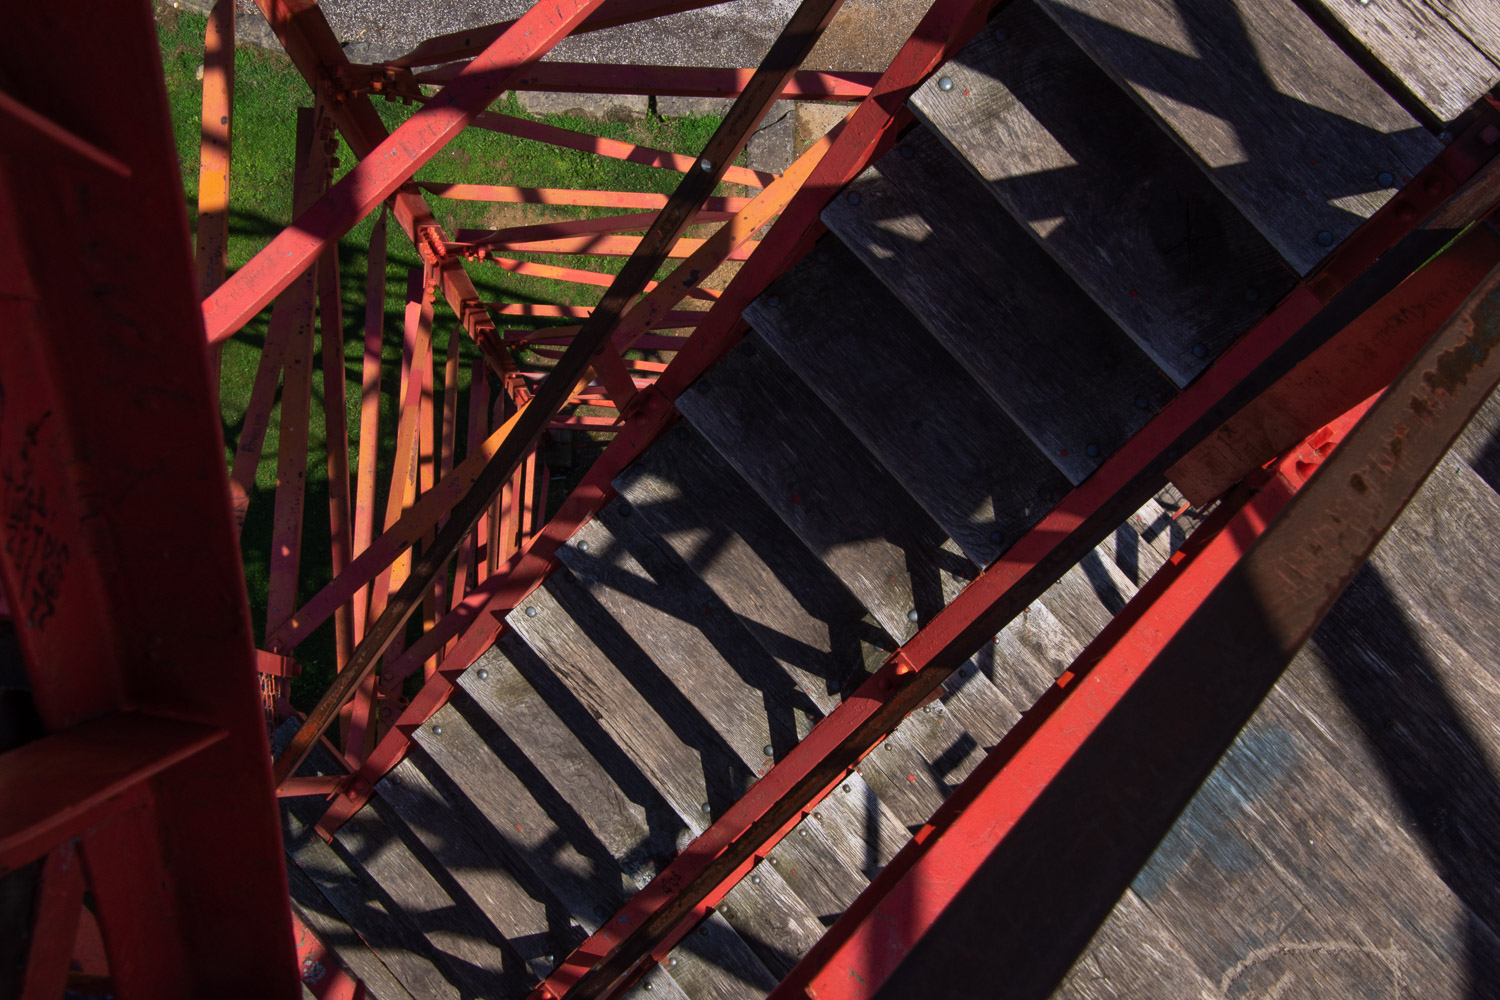 Stairs up fire tower at Mohican state park, ohio